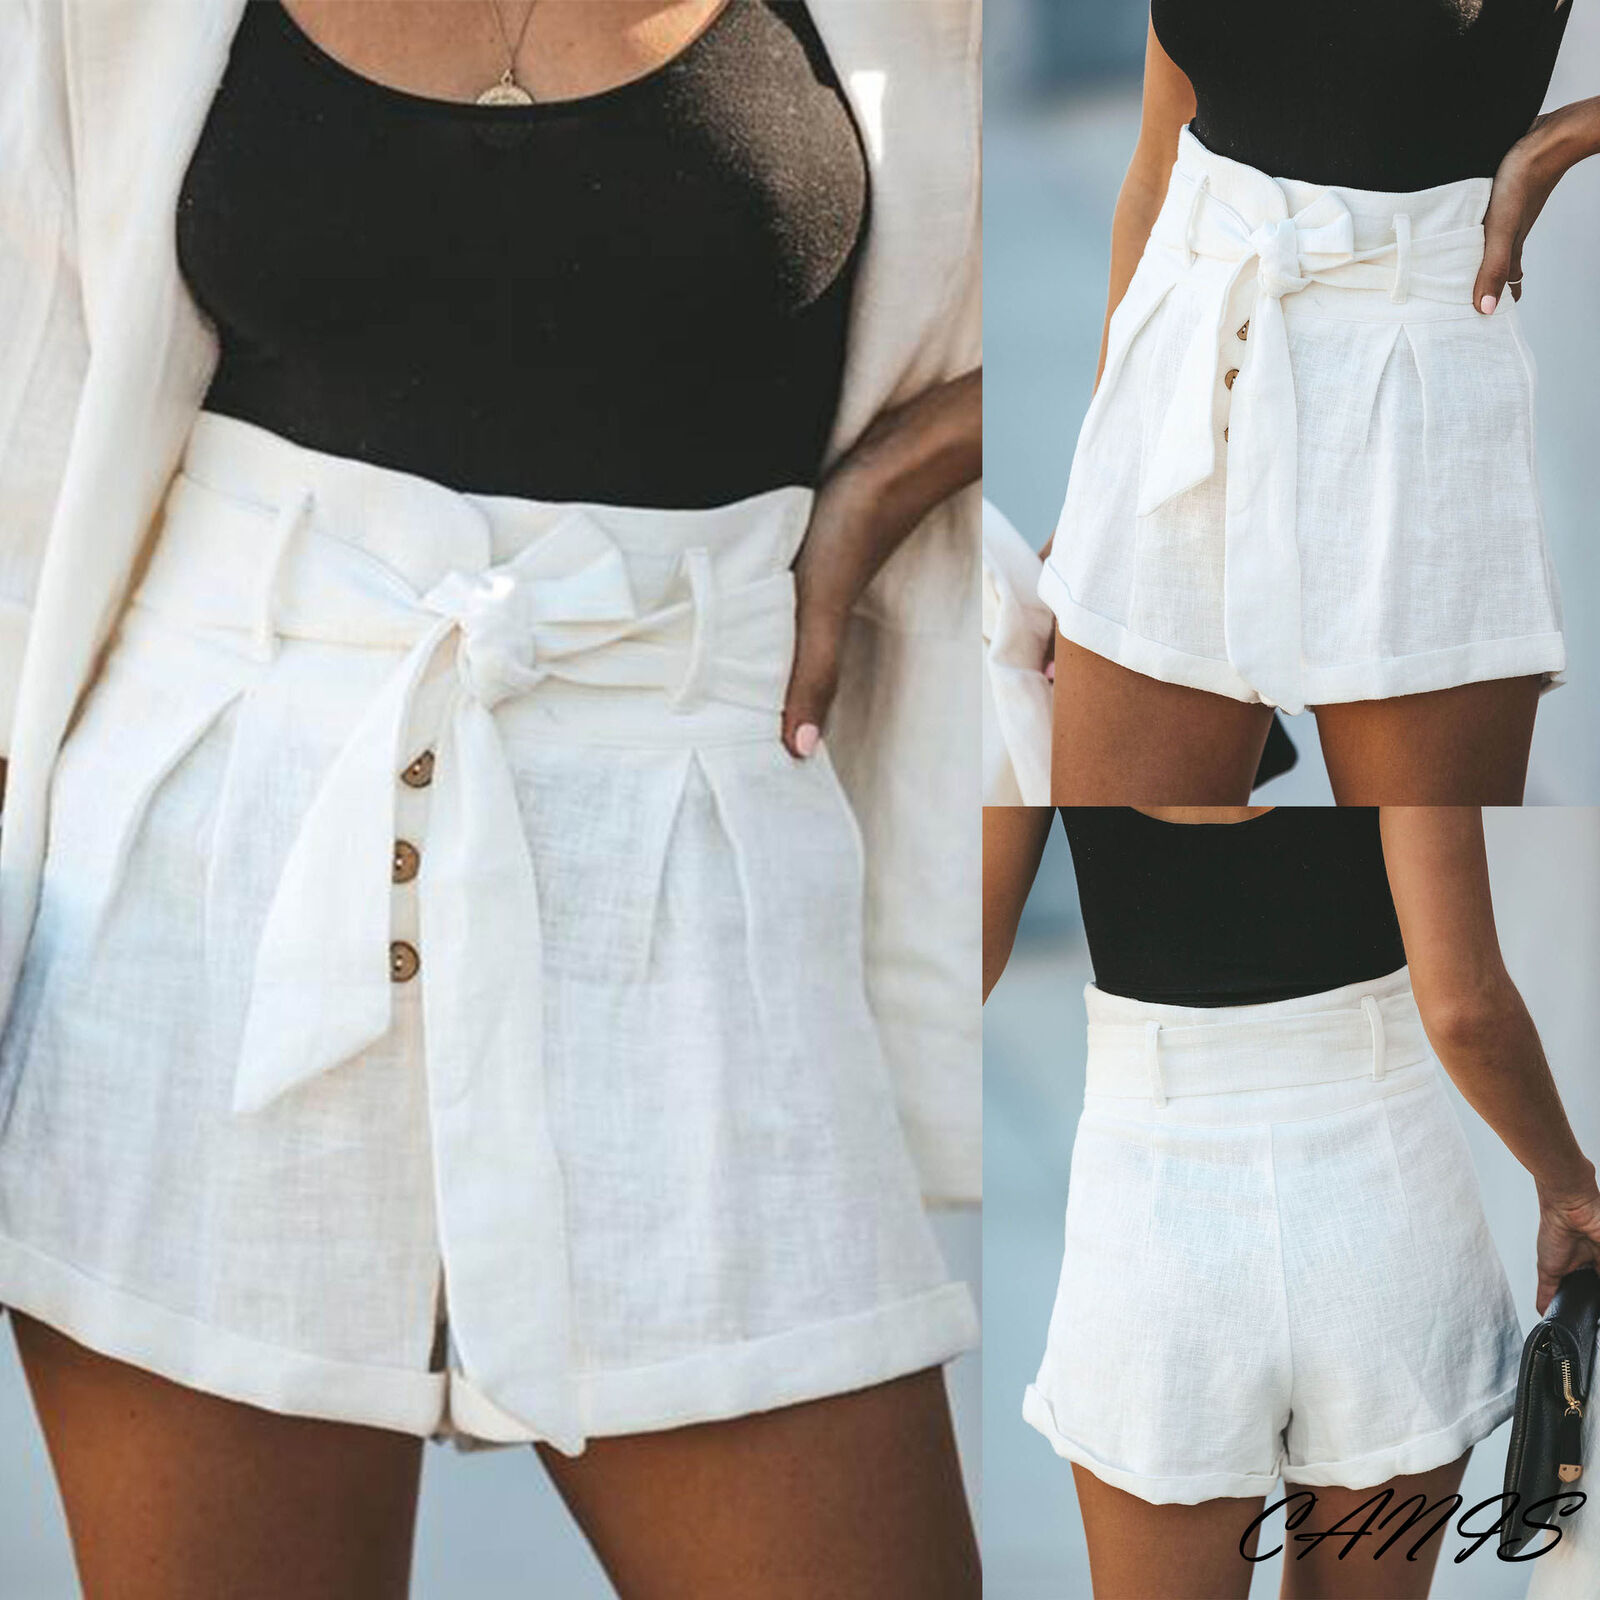 New Women Ladies Fashion Casual Summer Shorts Summer Solid High Waist Shorts Beach Party Slim Shorts Hot